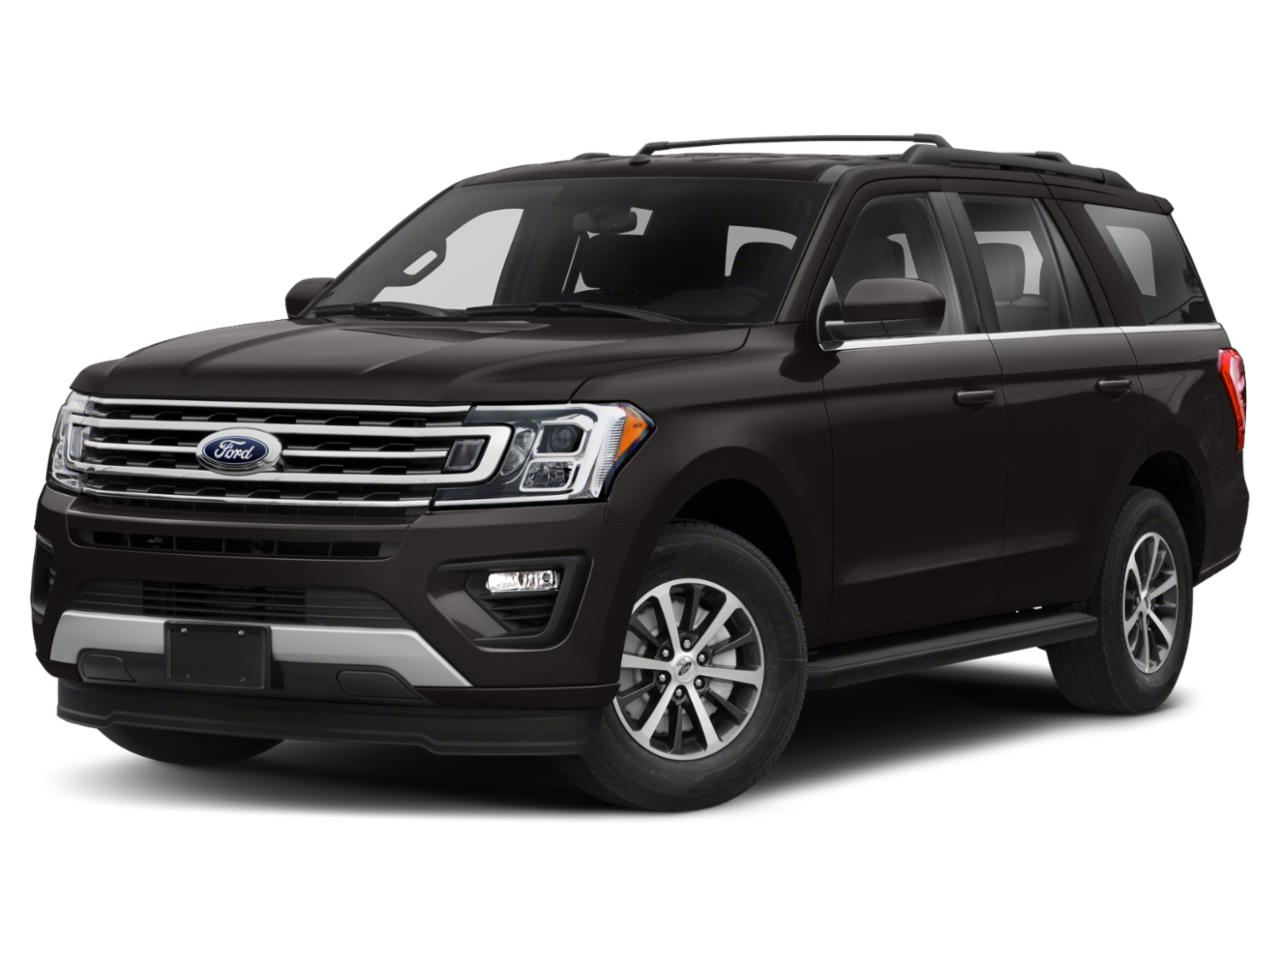 2020 Ford Expedition Vehicle Photo in SHREVEPORT, LA 71105-5534